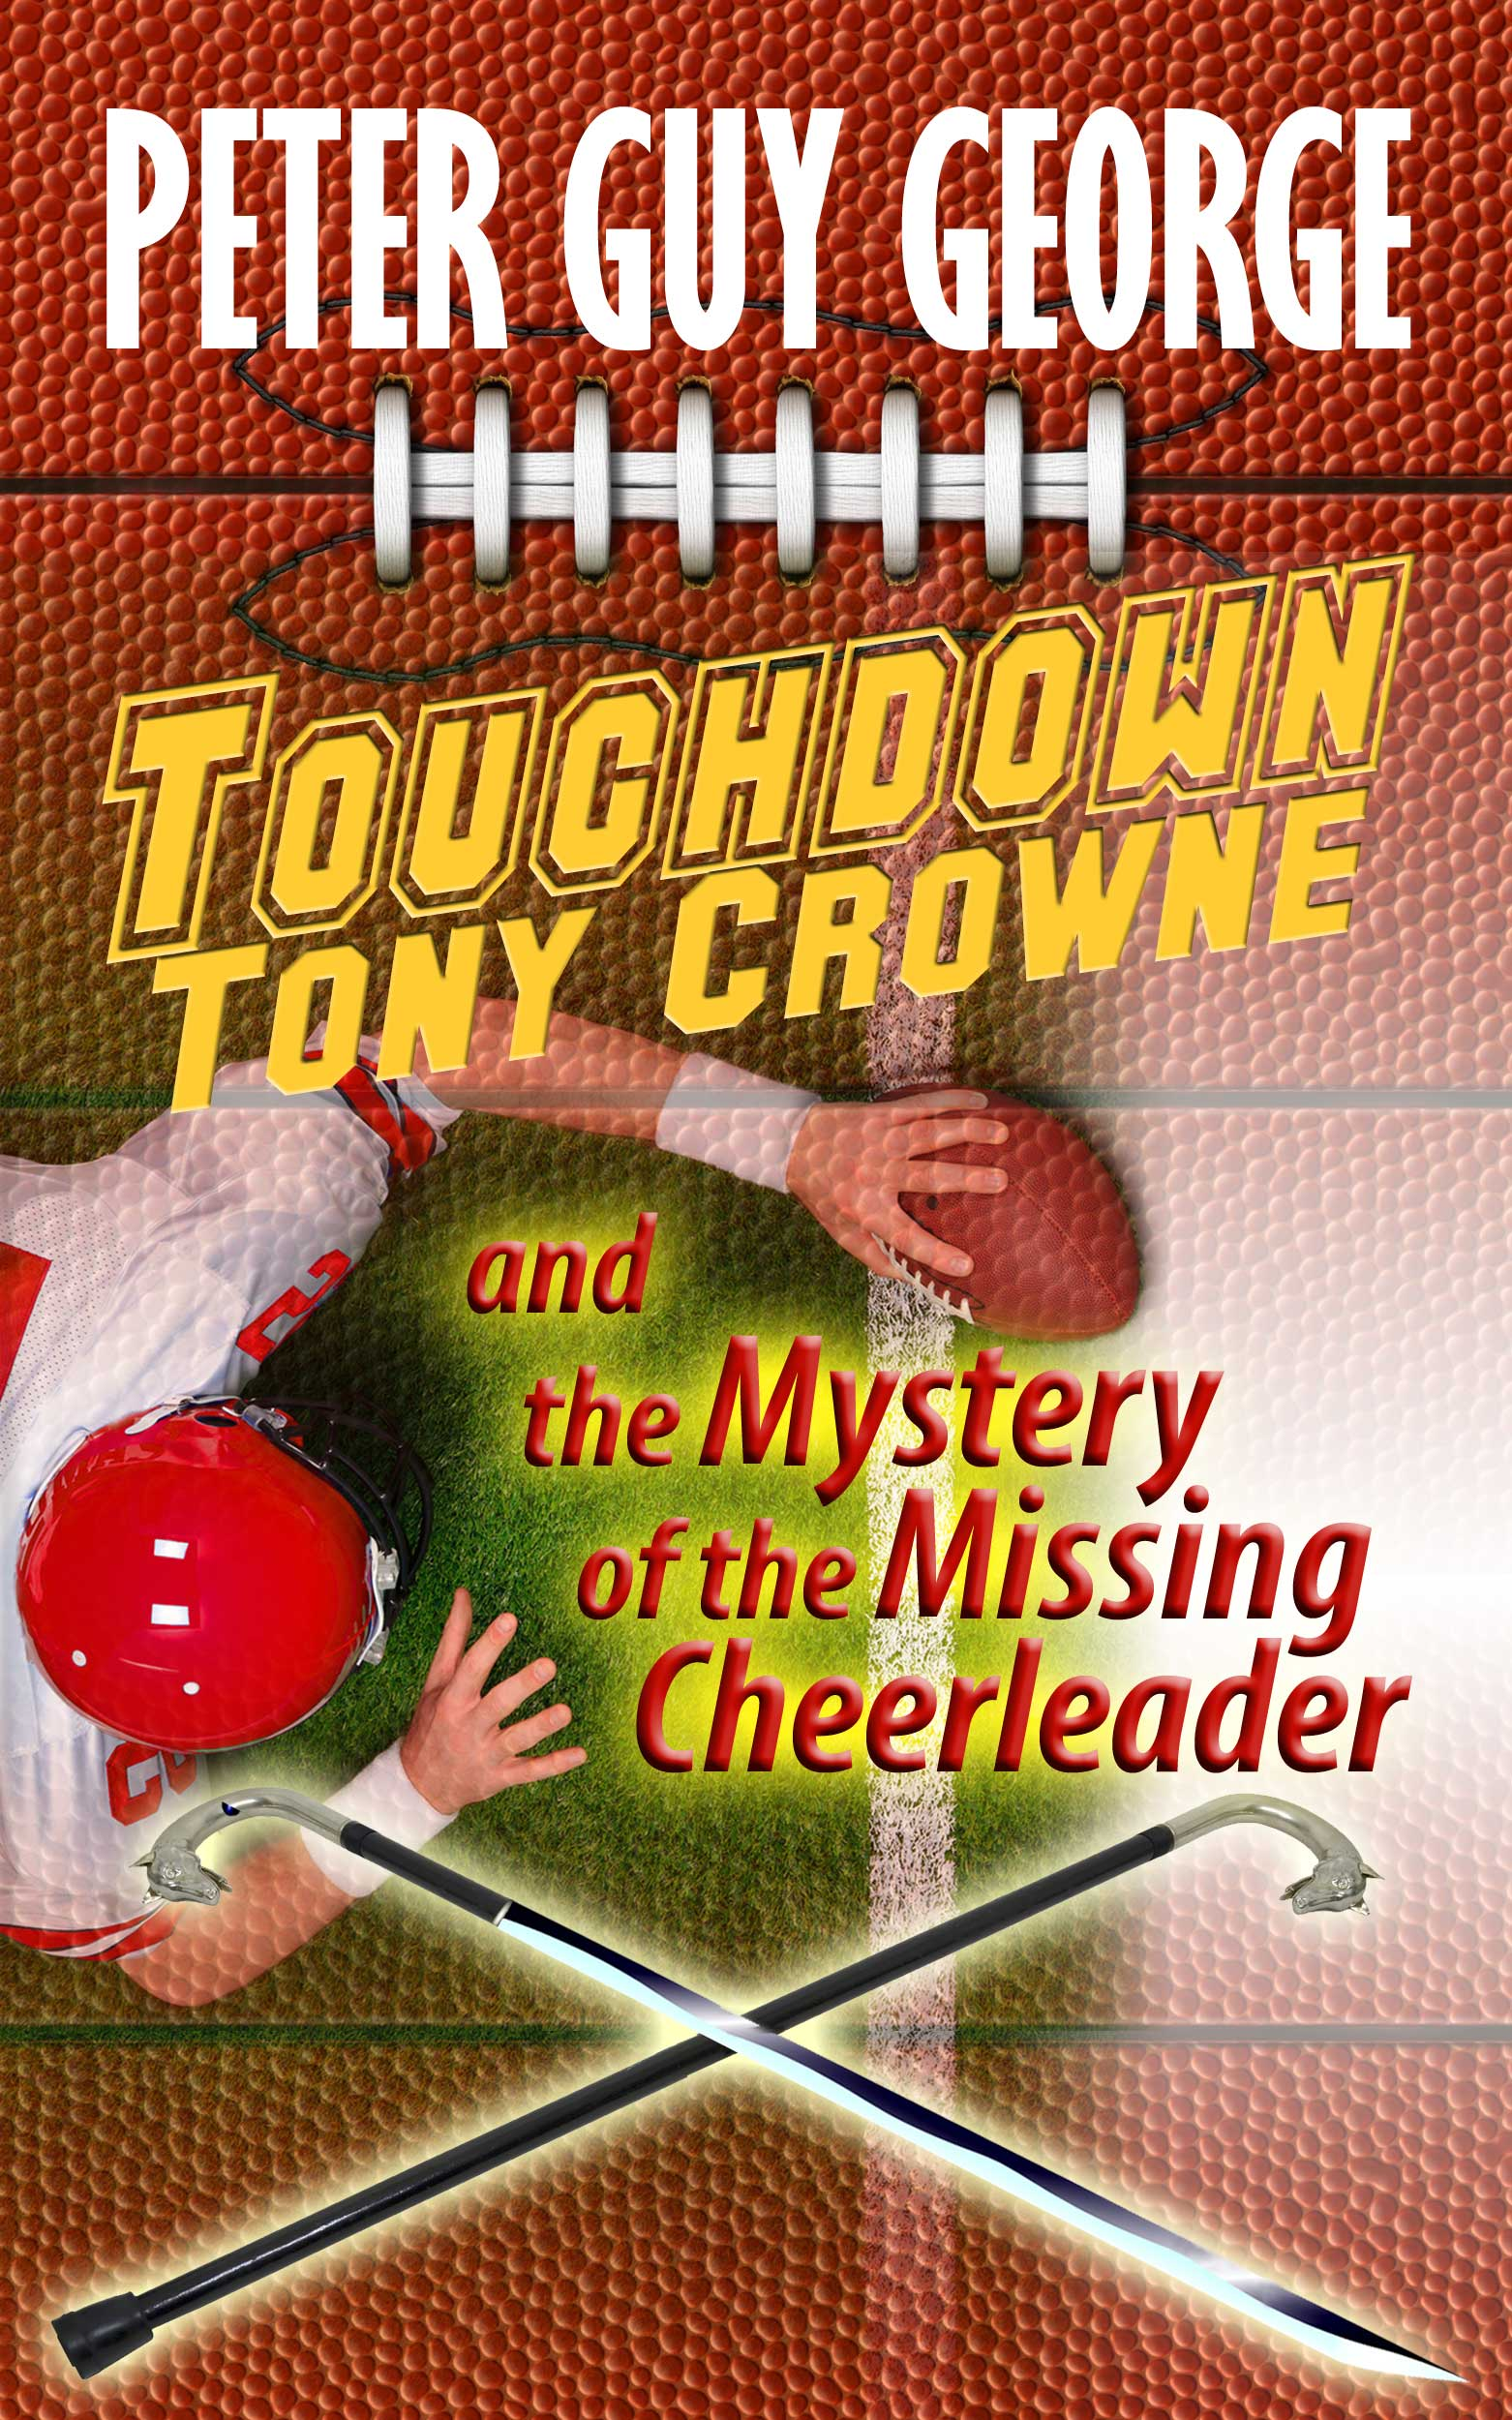 Tony-Crowne-Cheerleader-vsFINAL-medium-4